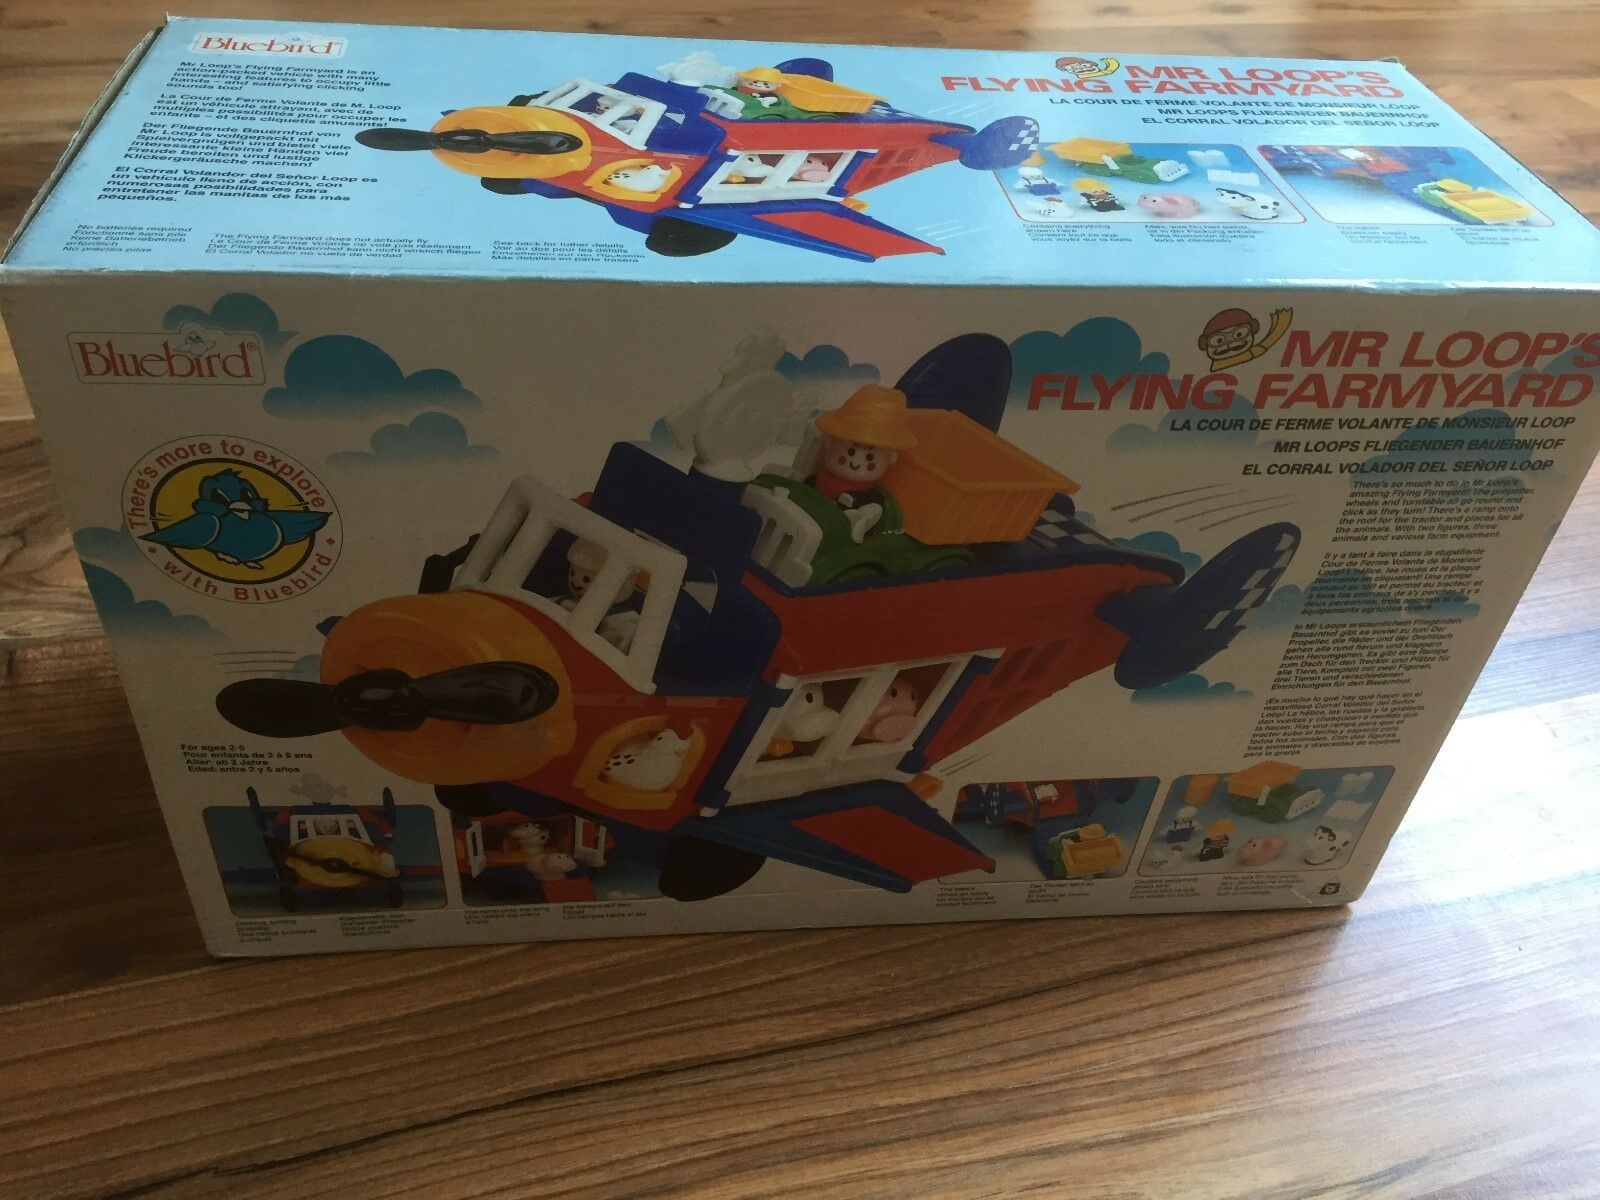 VINTAGE blueEBIRD MR LOOPS FLYING FARMYARD SET BOXED NEW